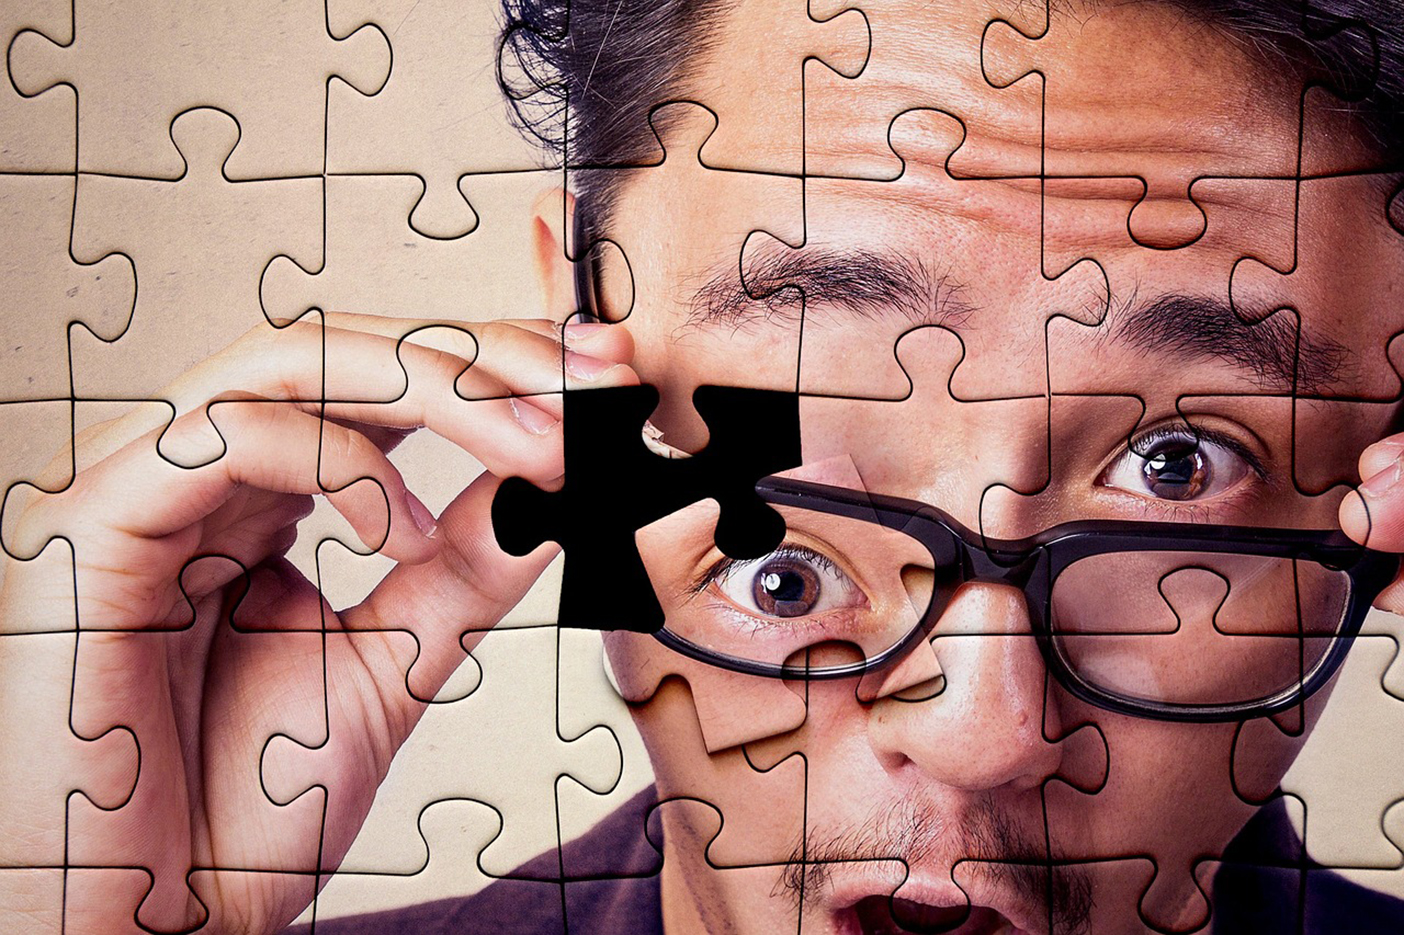 Jigsaw puzzle of surprised man with the last puzzle piece of the man's eye loose on top of the puzzle